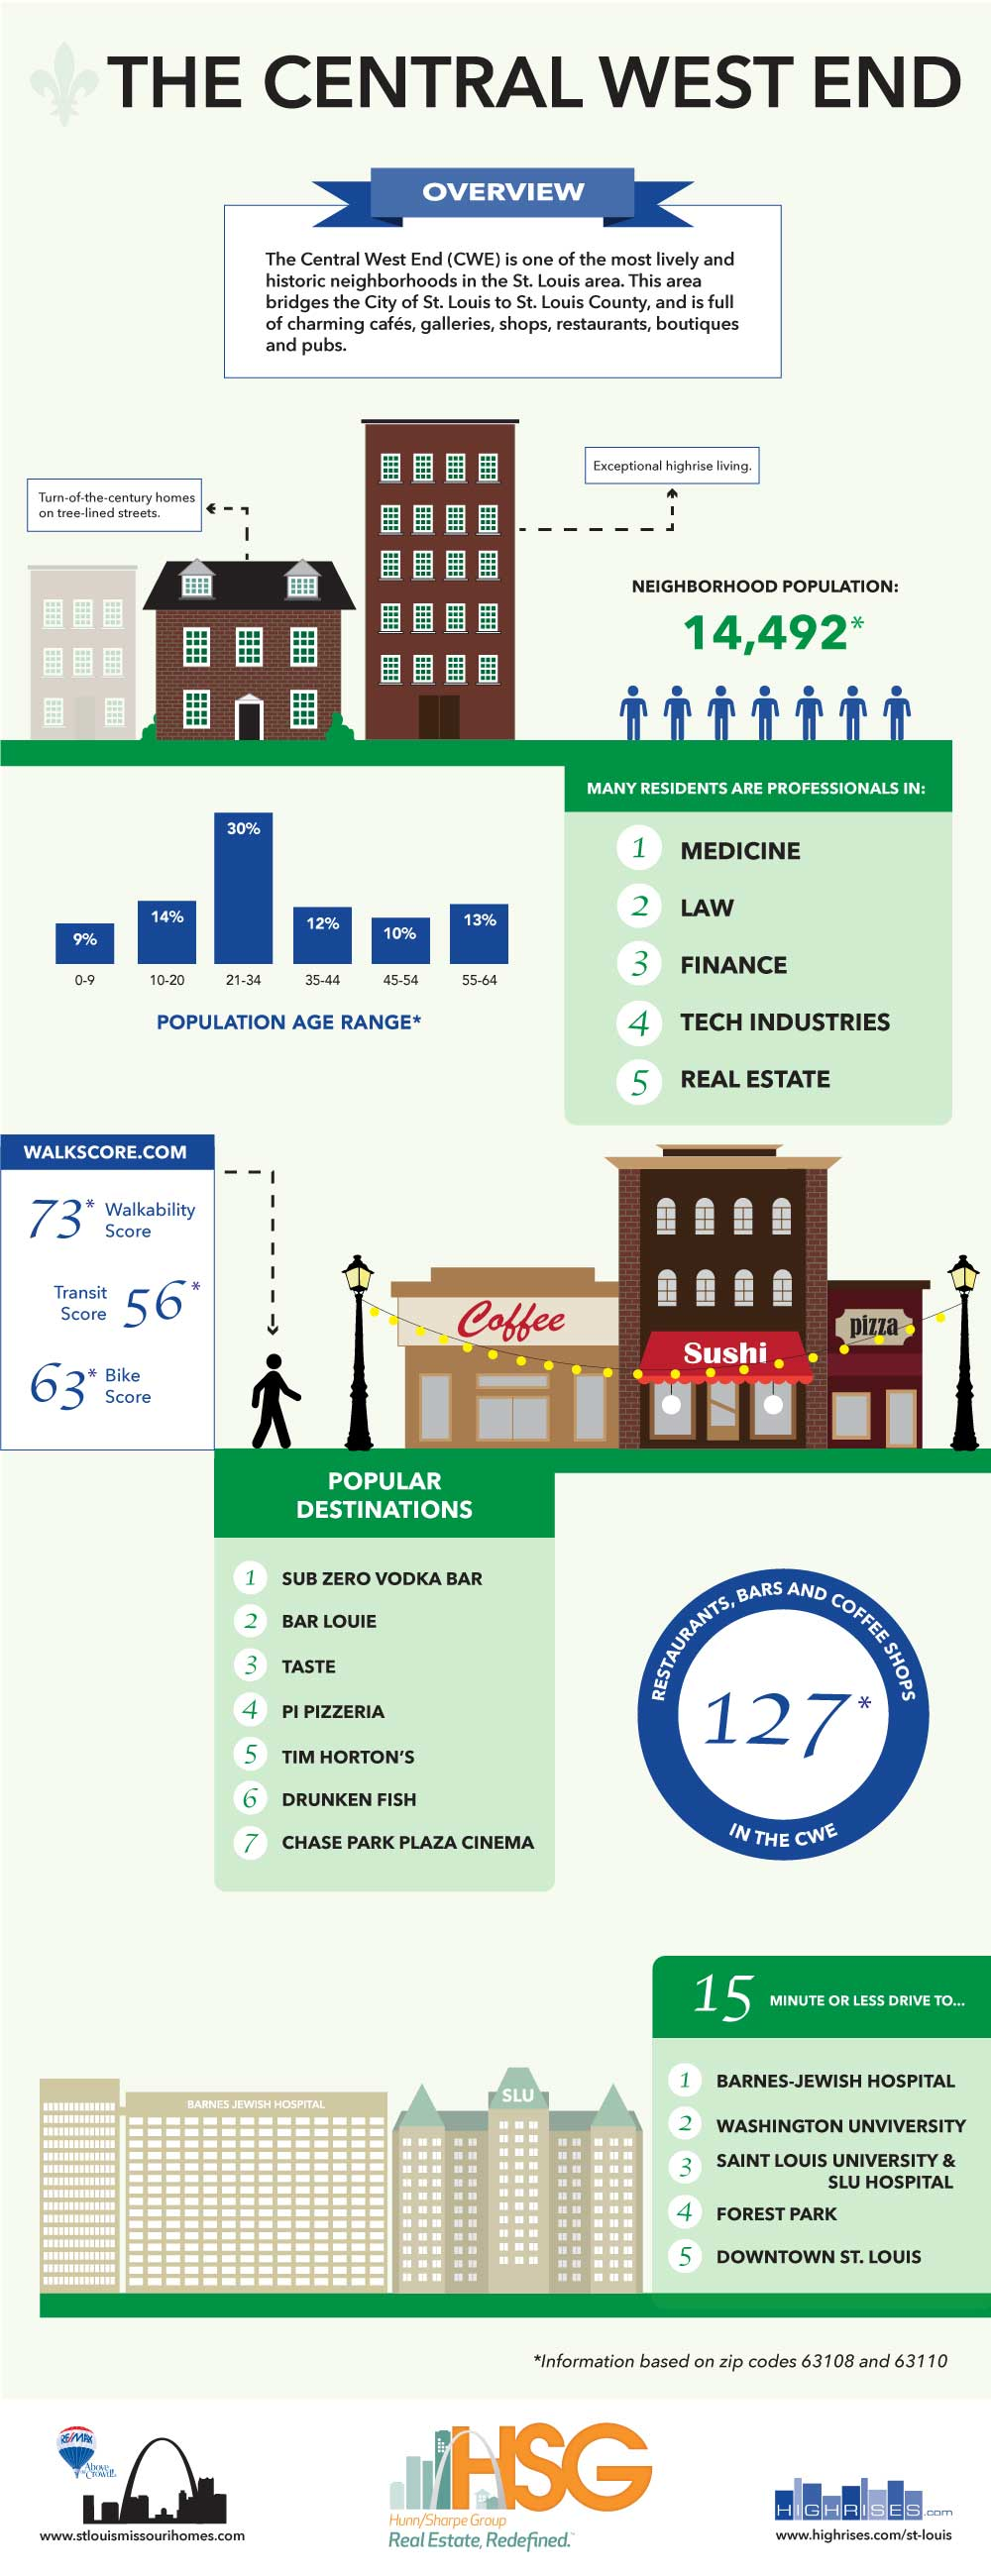 Infographic about the Central West End in St. Louis